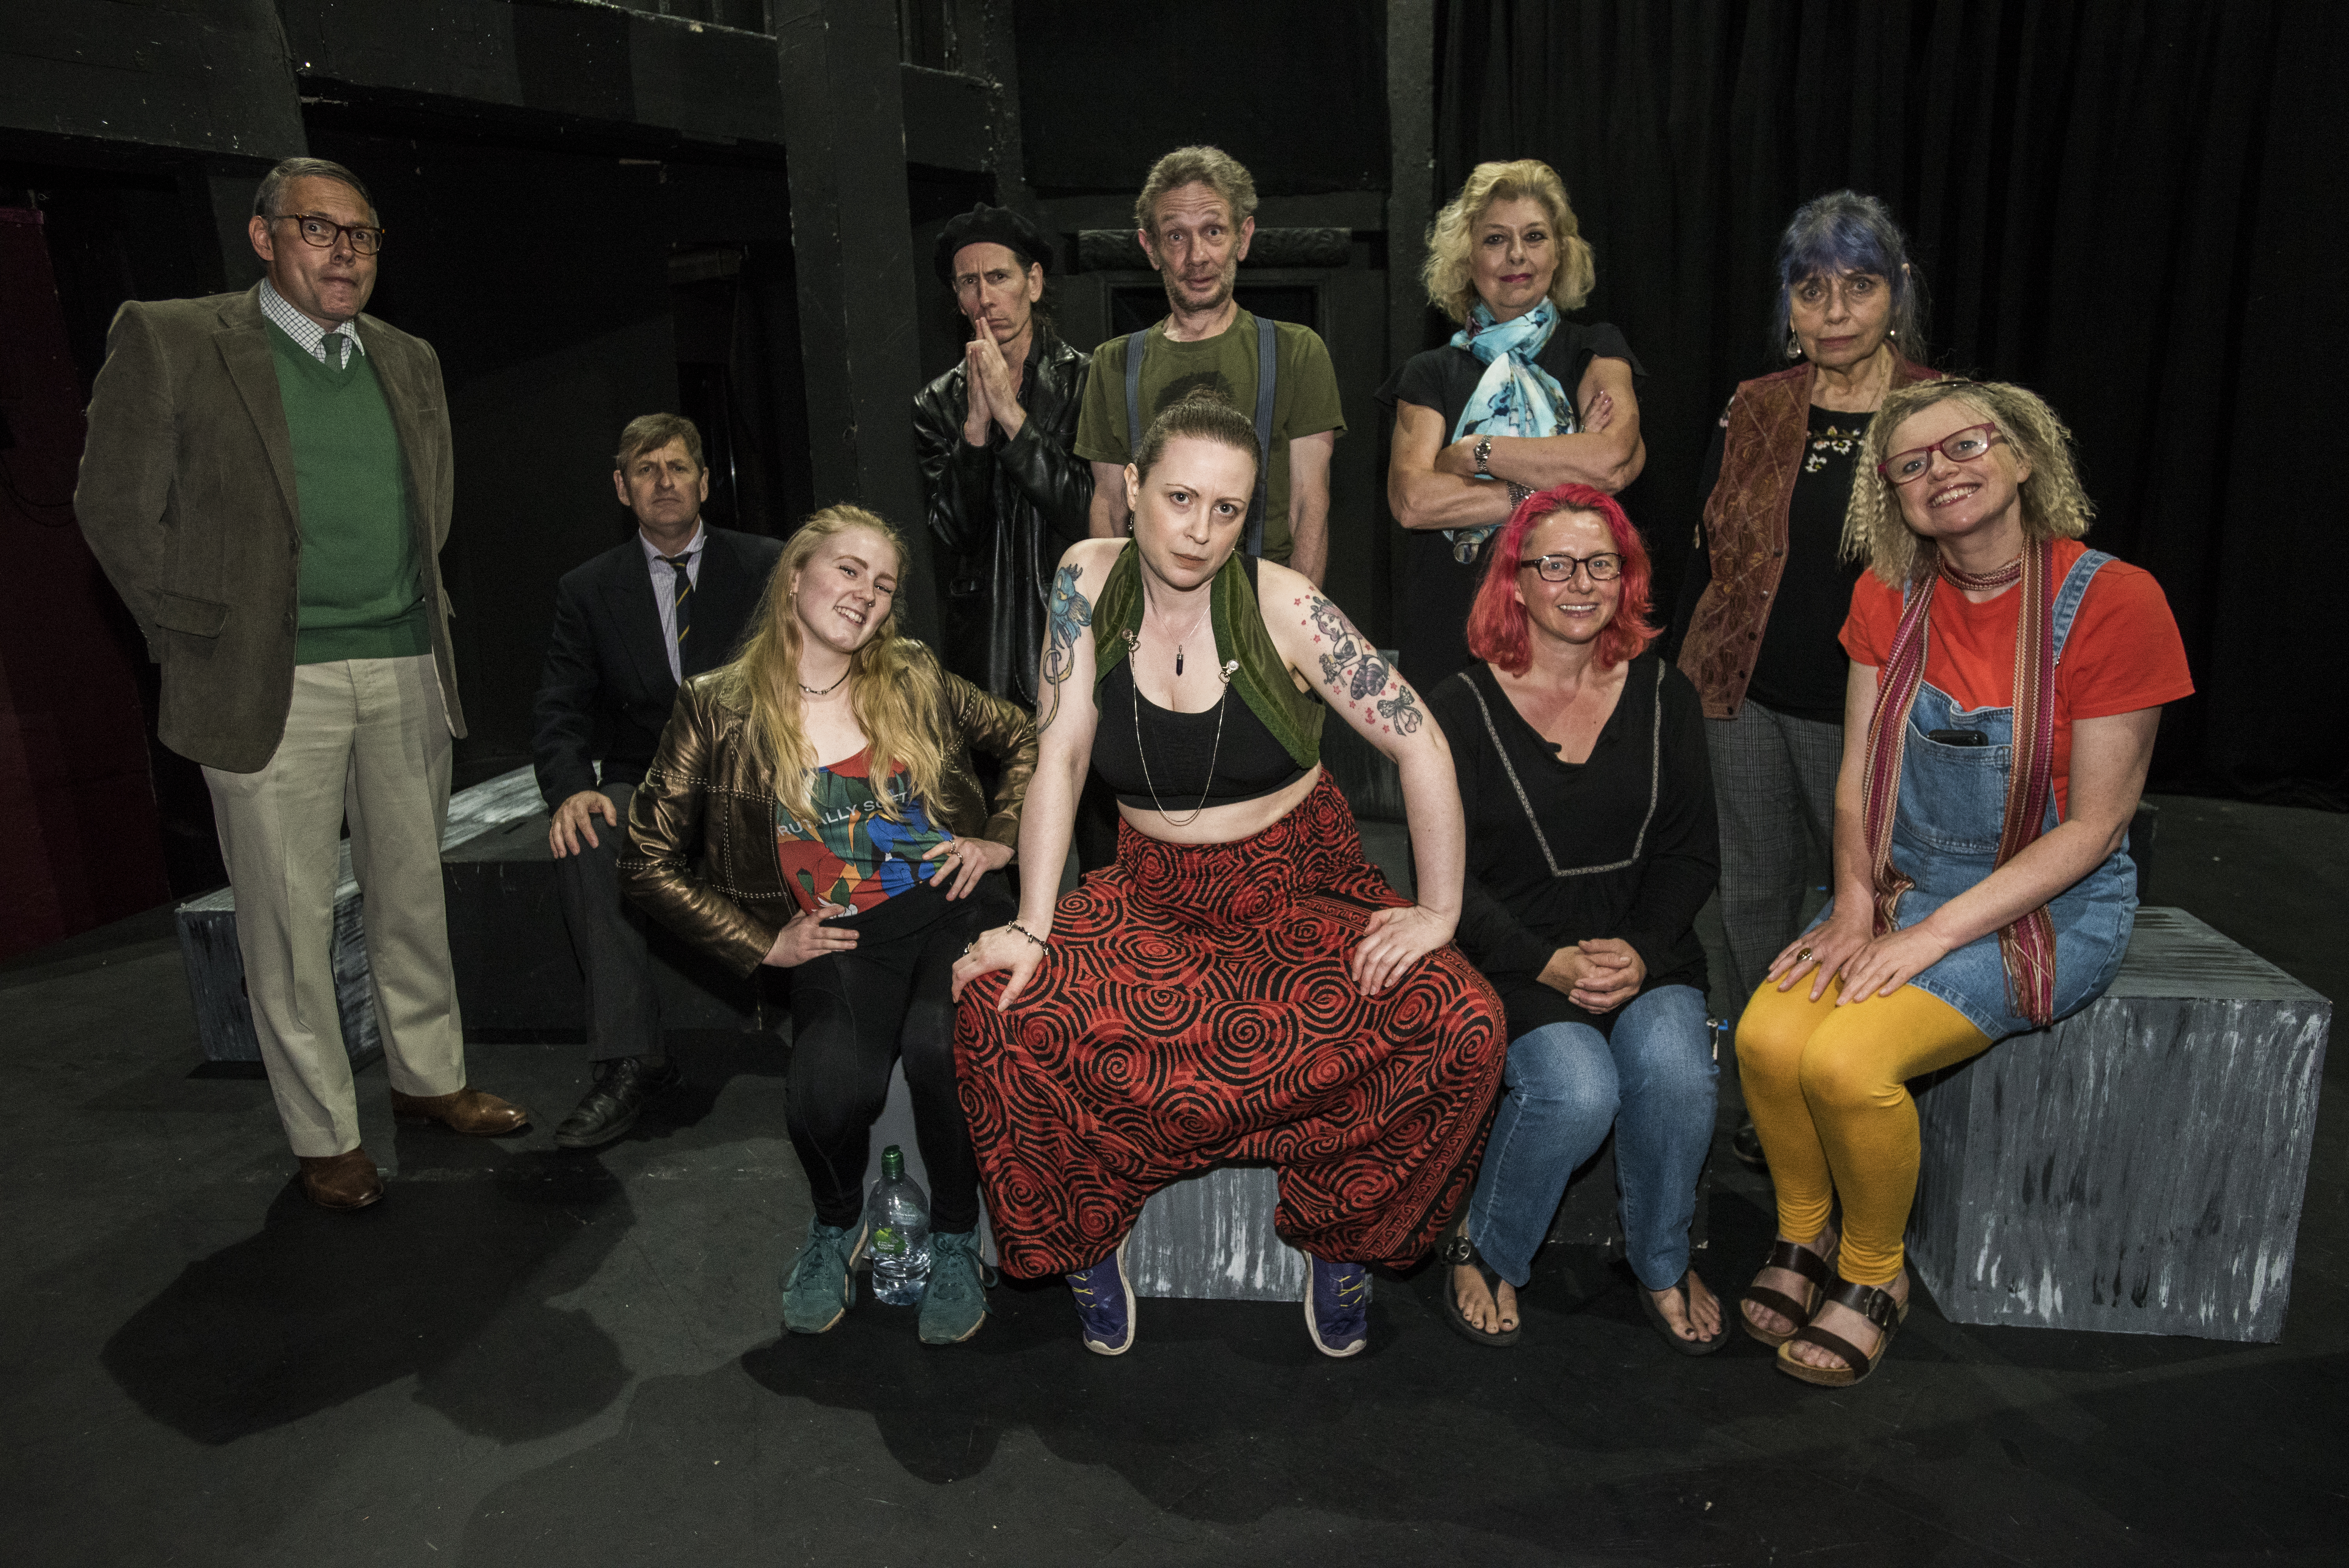 Jac (centre), The Audition, 2018